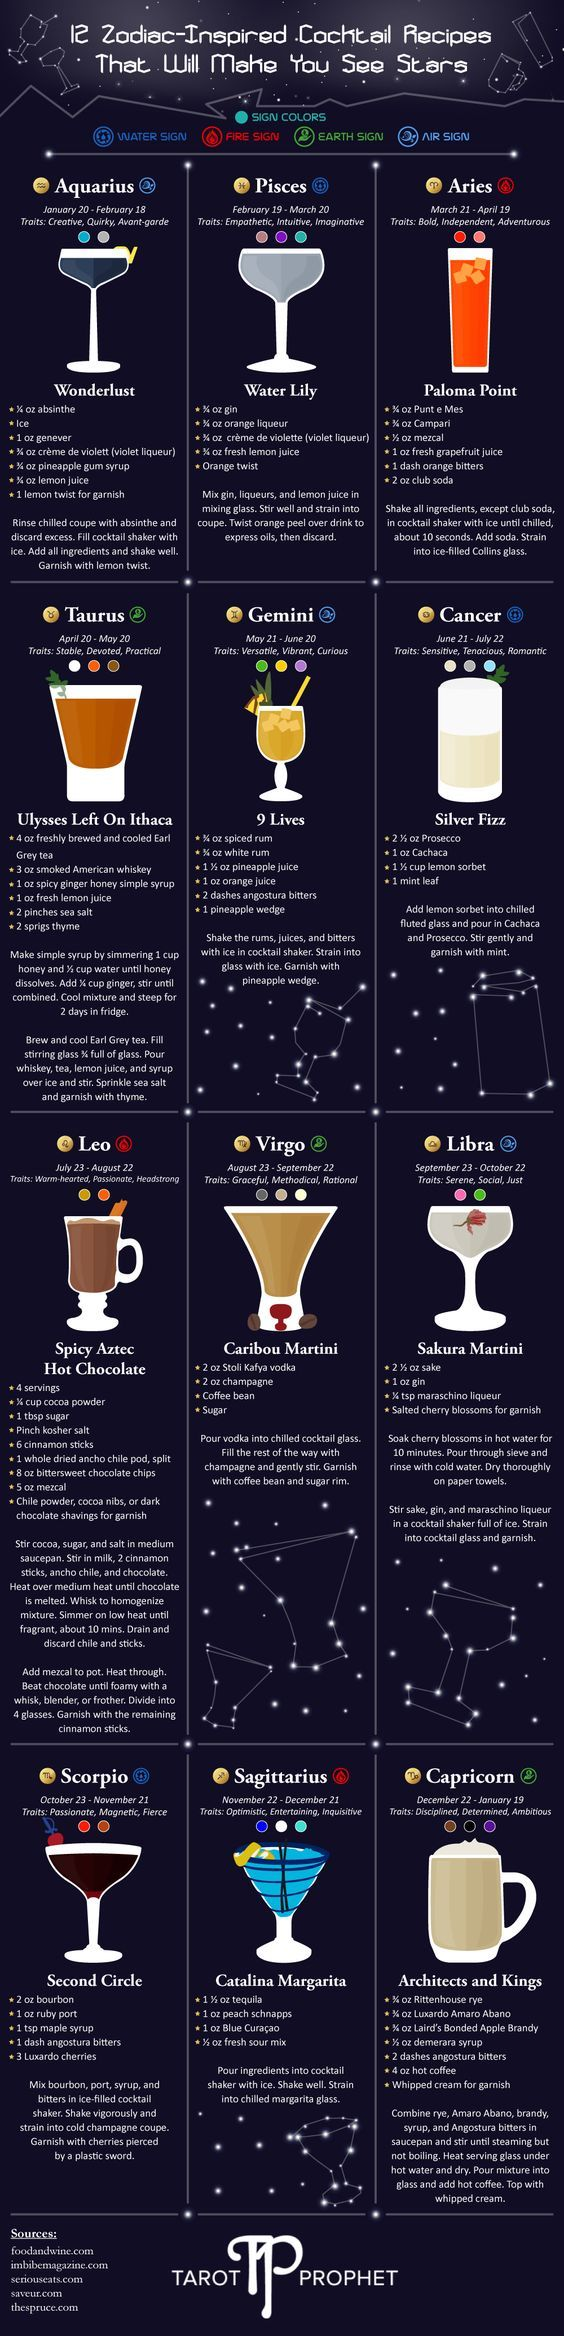 The stars aligned to reveal these mixstrology-inspired cocktail recipes! So stir up an exciting and imaginative future (or at least evening) with this cluster of cocktails!